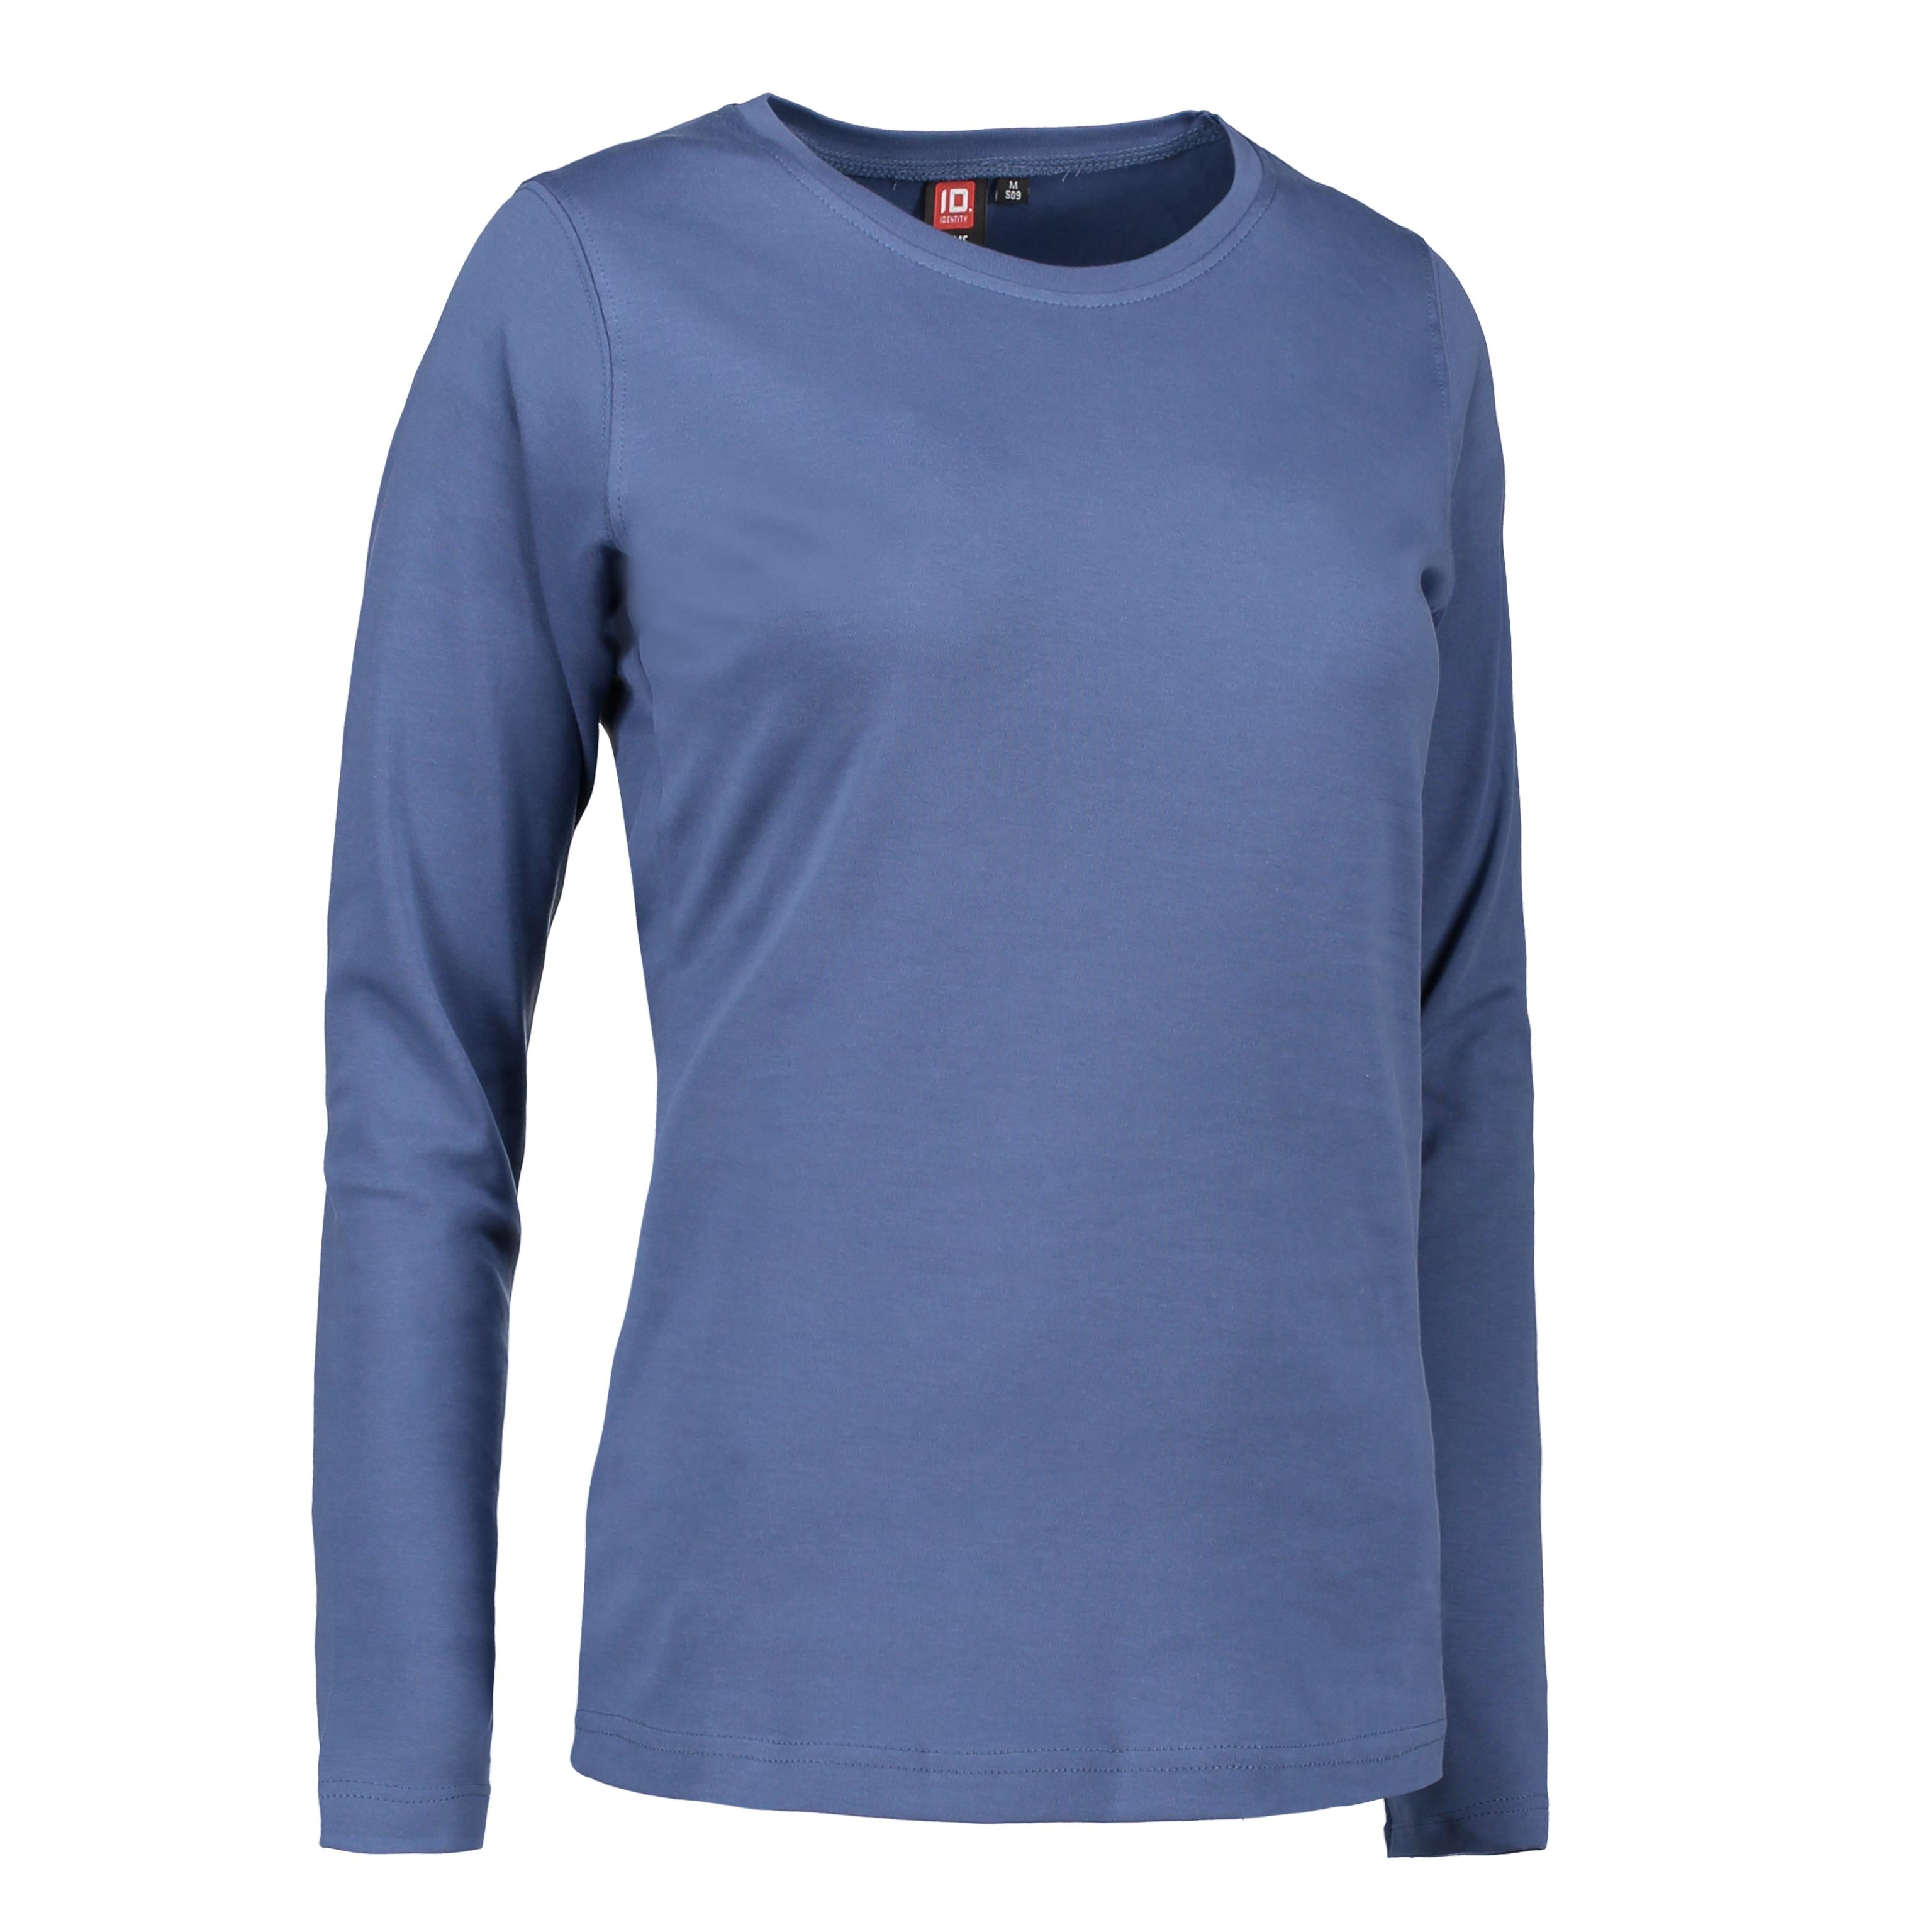 ID Interlock dame T shirt|langærm 0509